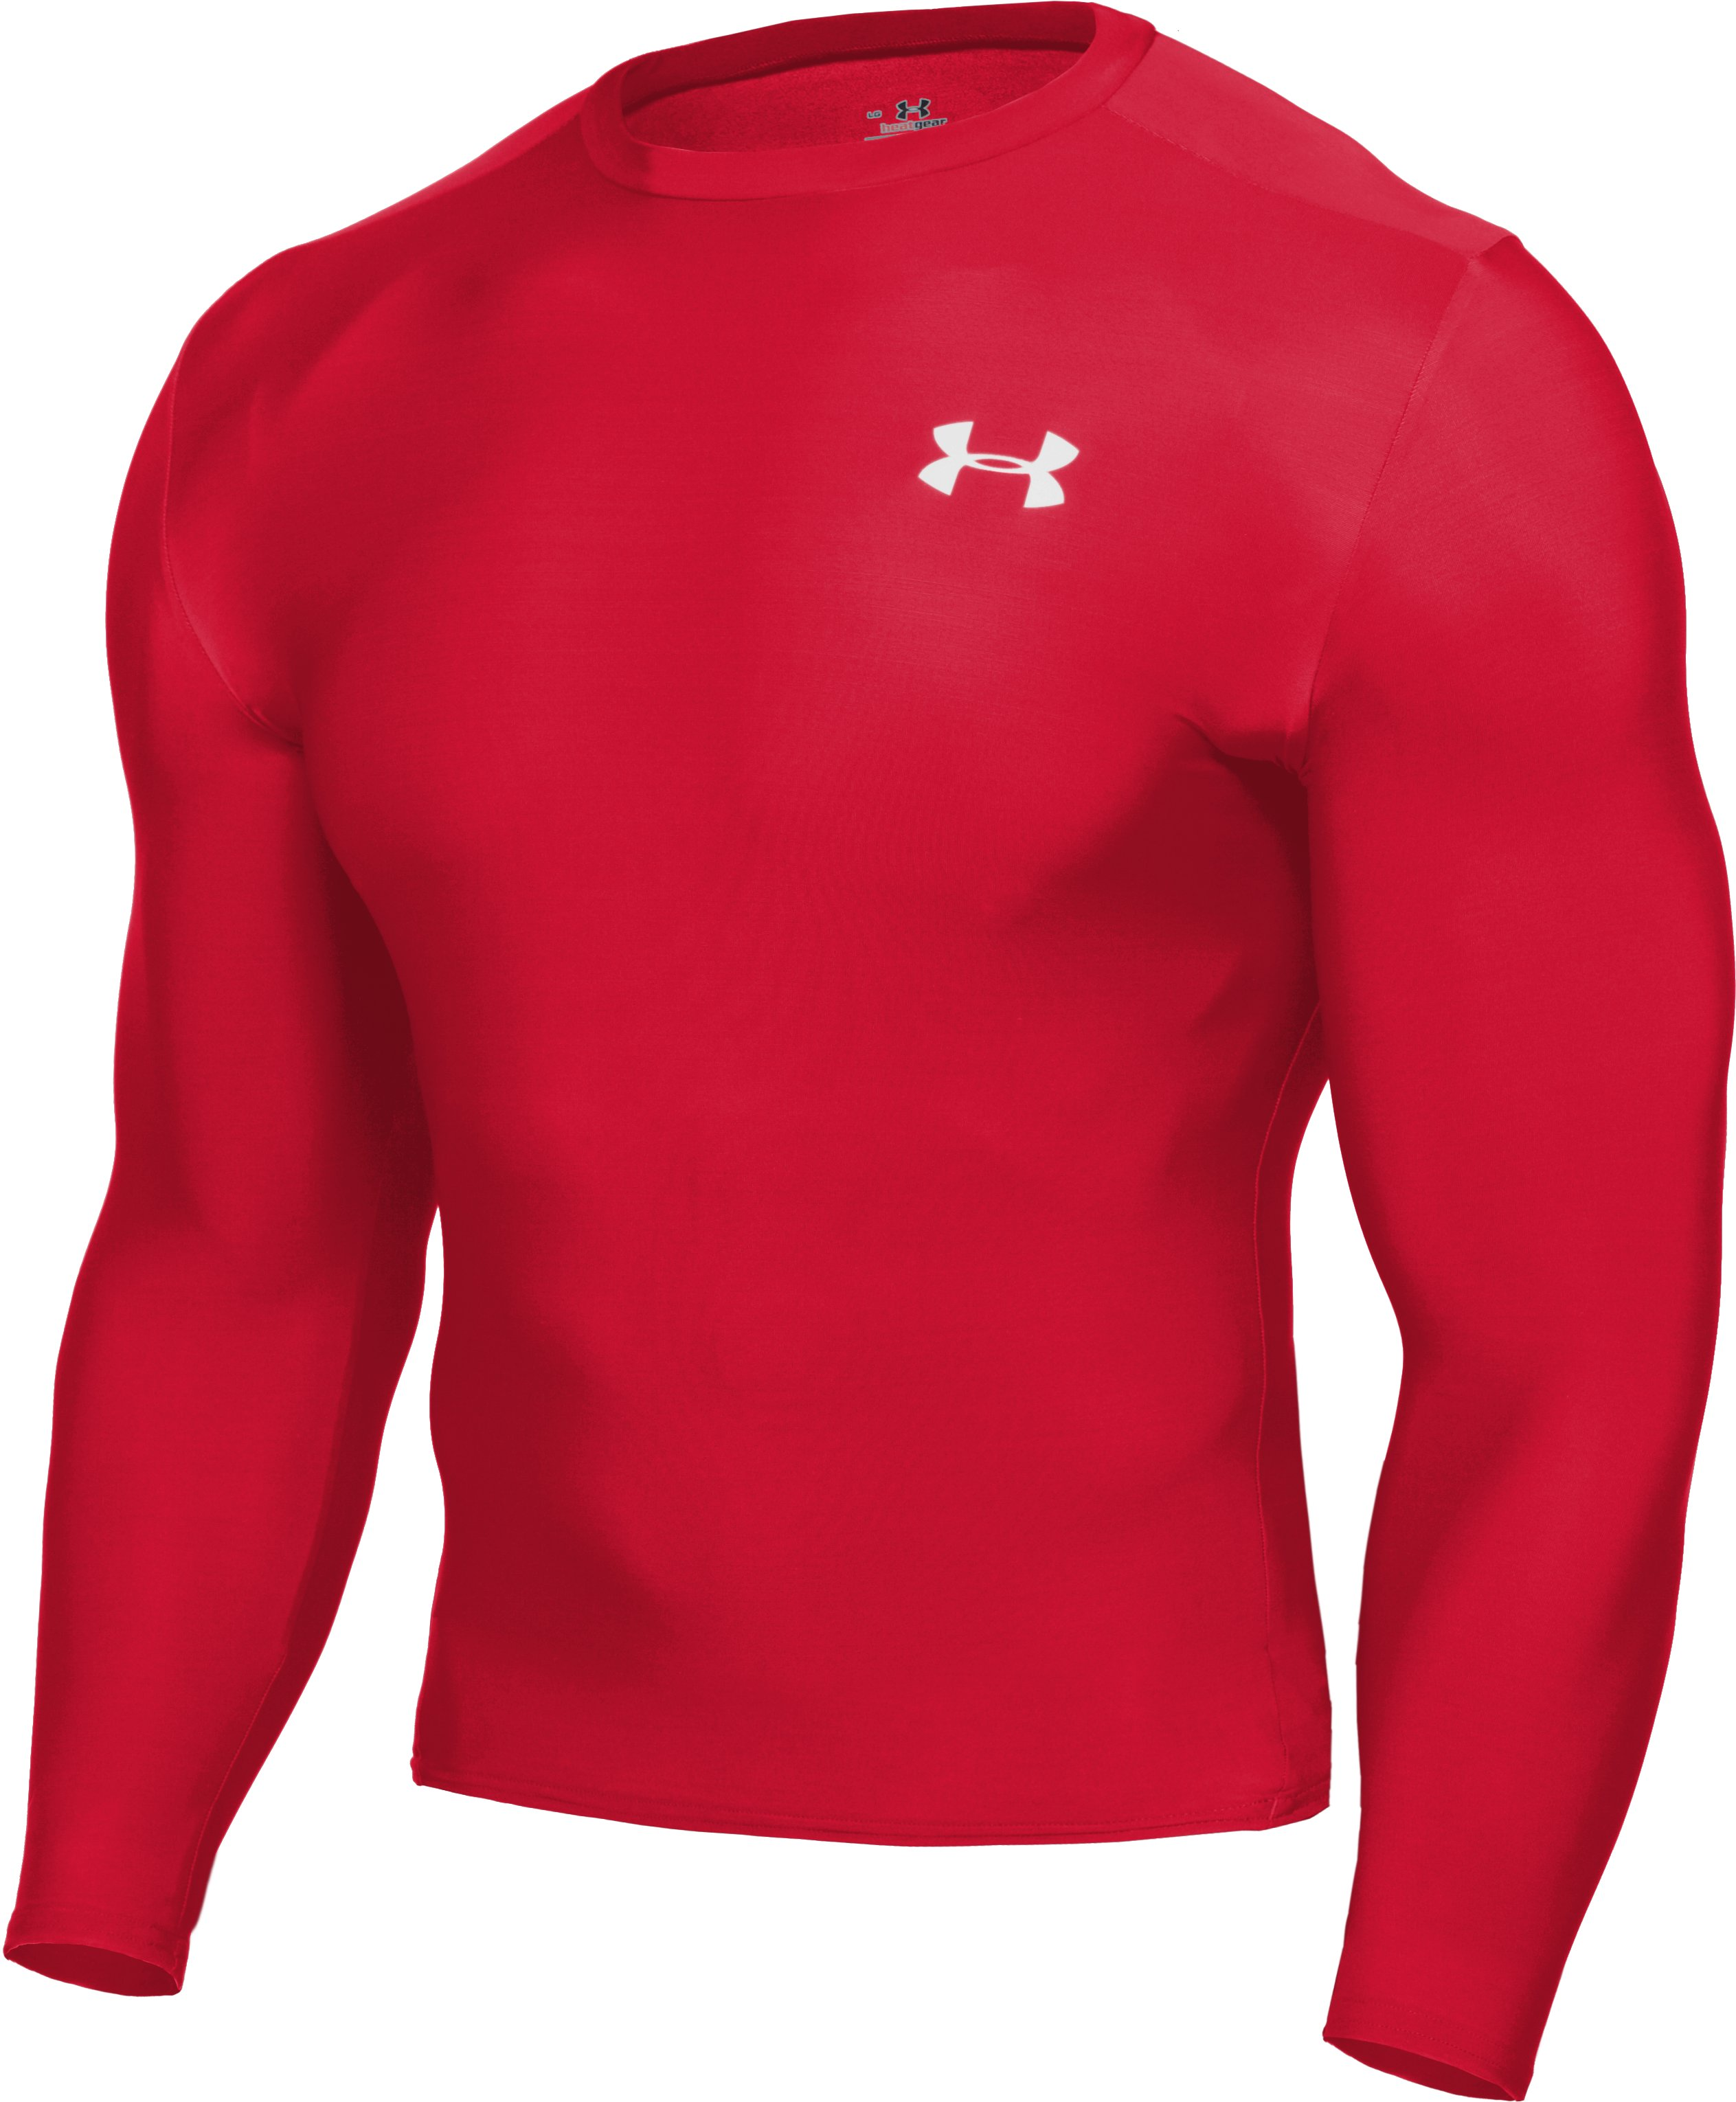 Men's HeatGear® Compression Long Sleeve T-Shirt, Red,